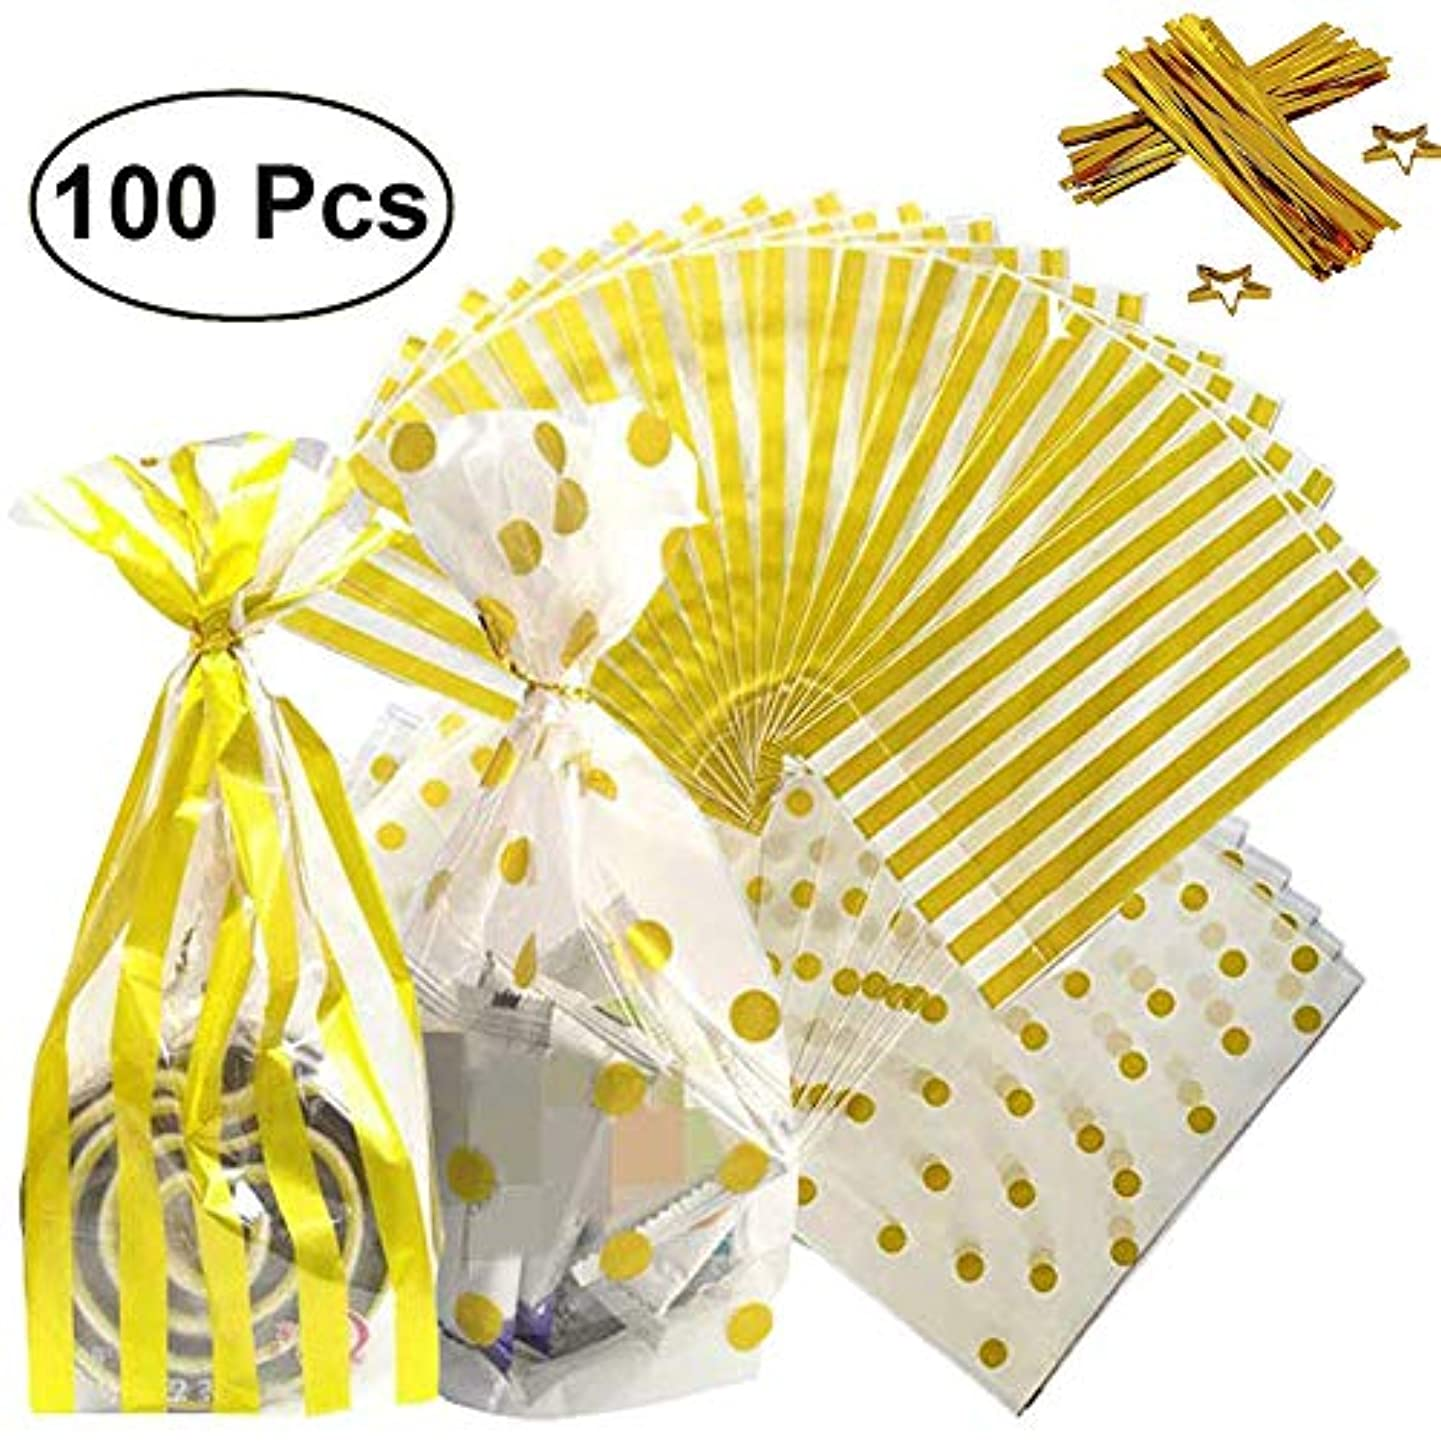 100 Pack Gold Striped and Gold Polka Dot Plastic Packaging Bags with 200 Pieces Twist Ties, 6×10 inch Clear Plastic Treat Bags for Candy Cookie Snack, Cello Party Wrapping Bags